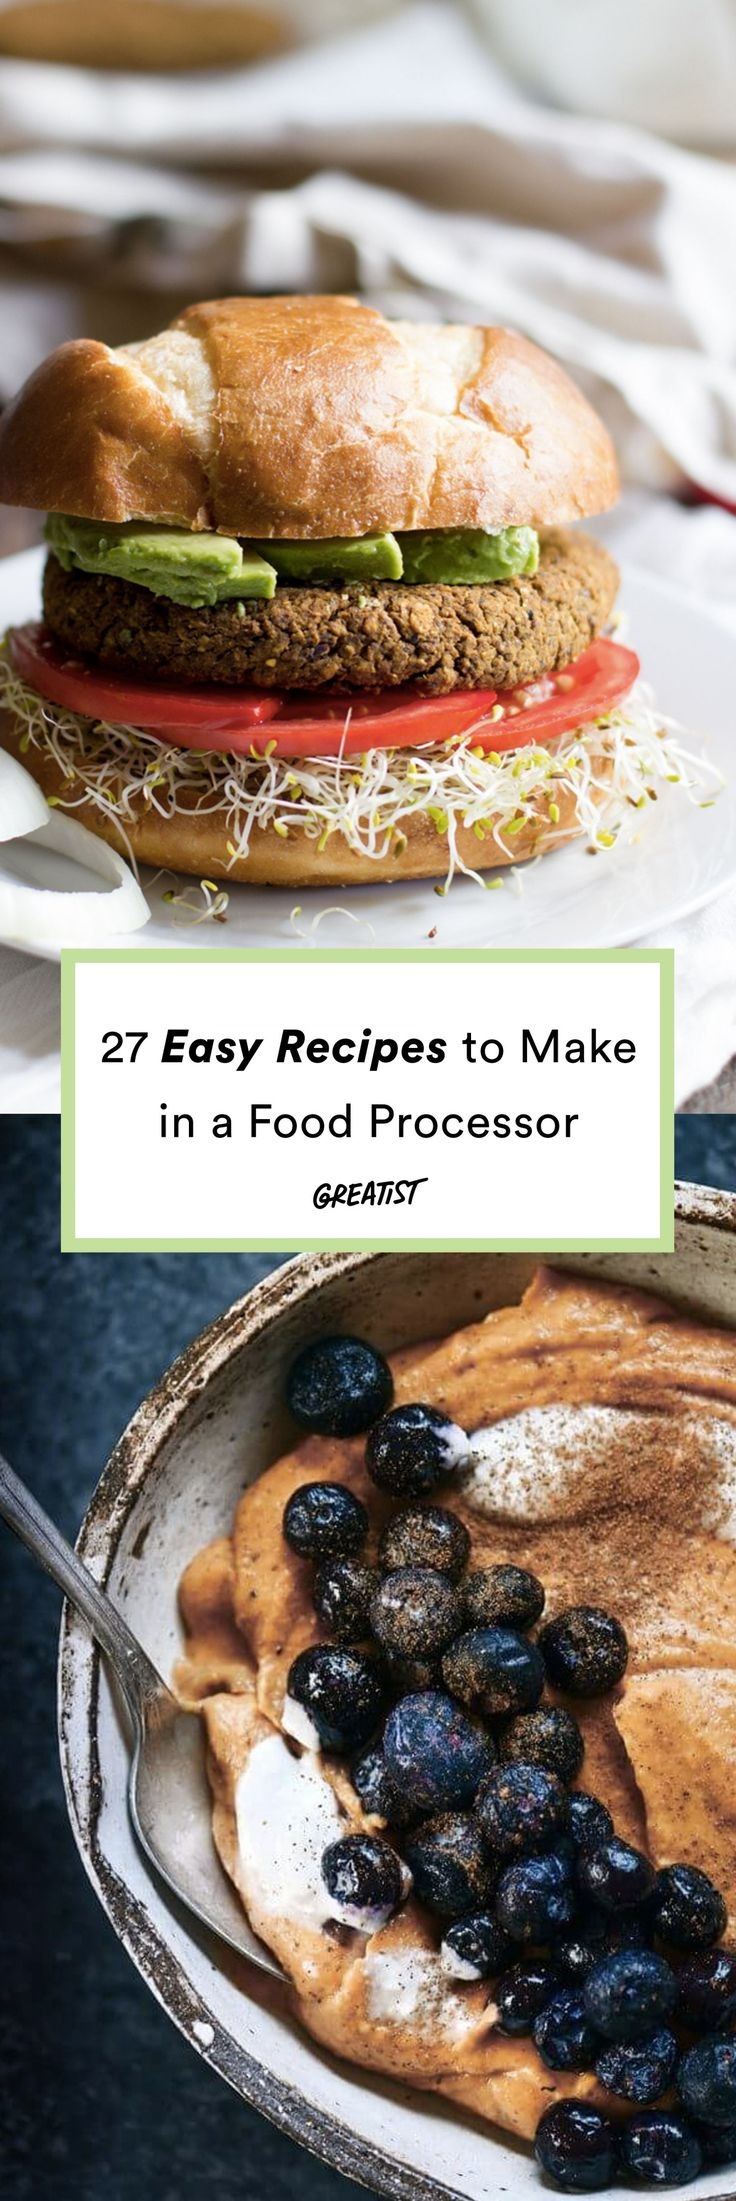 Best 25 food processor recipes ideas on pinterest salsa recipe 27 food processor recipes that will motivate you to finally start using it forumfinder Gallery